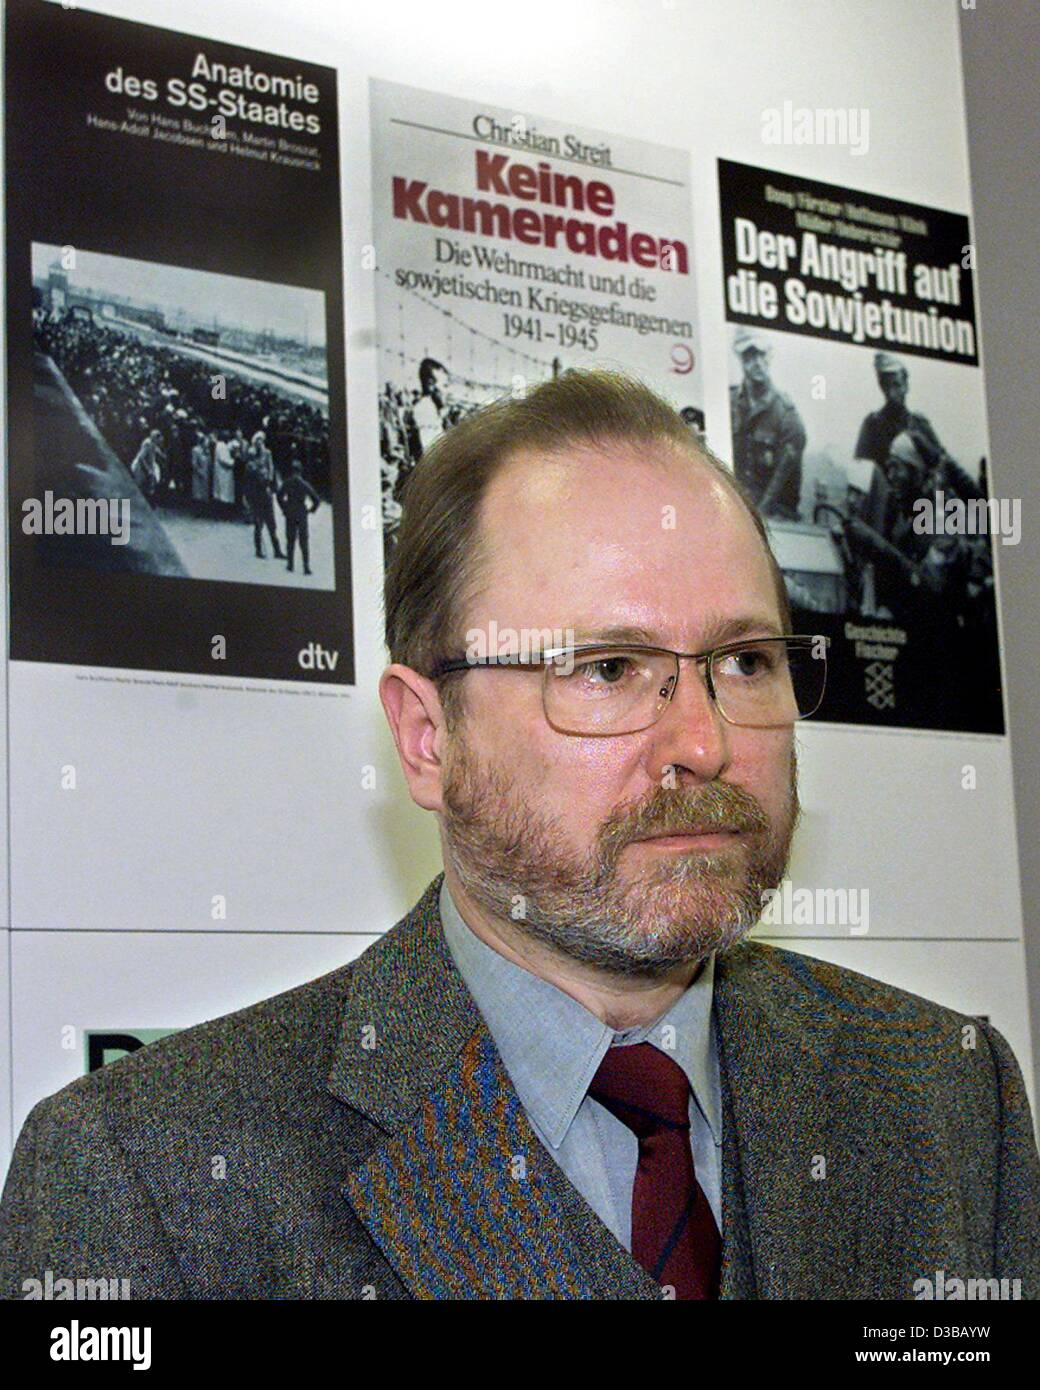 (dpa) - Jan Philipp Reemtsma, initiator of the exhibition on crimes of the Wehrmacht, pictured in front of posters - Stock Image